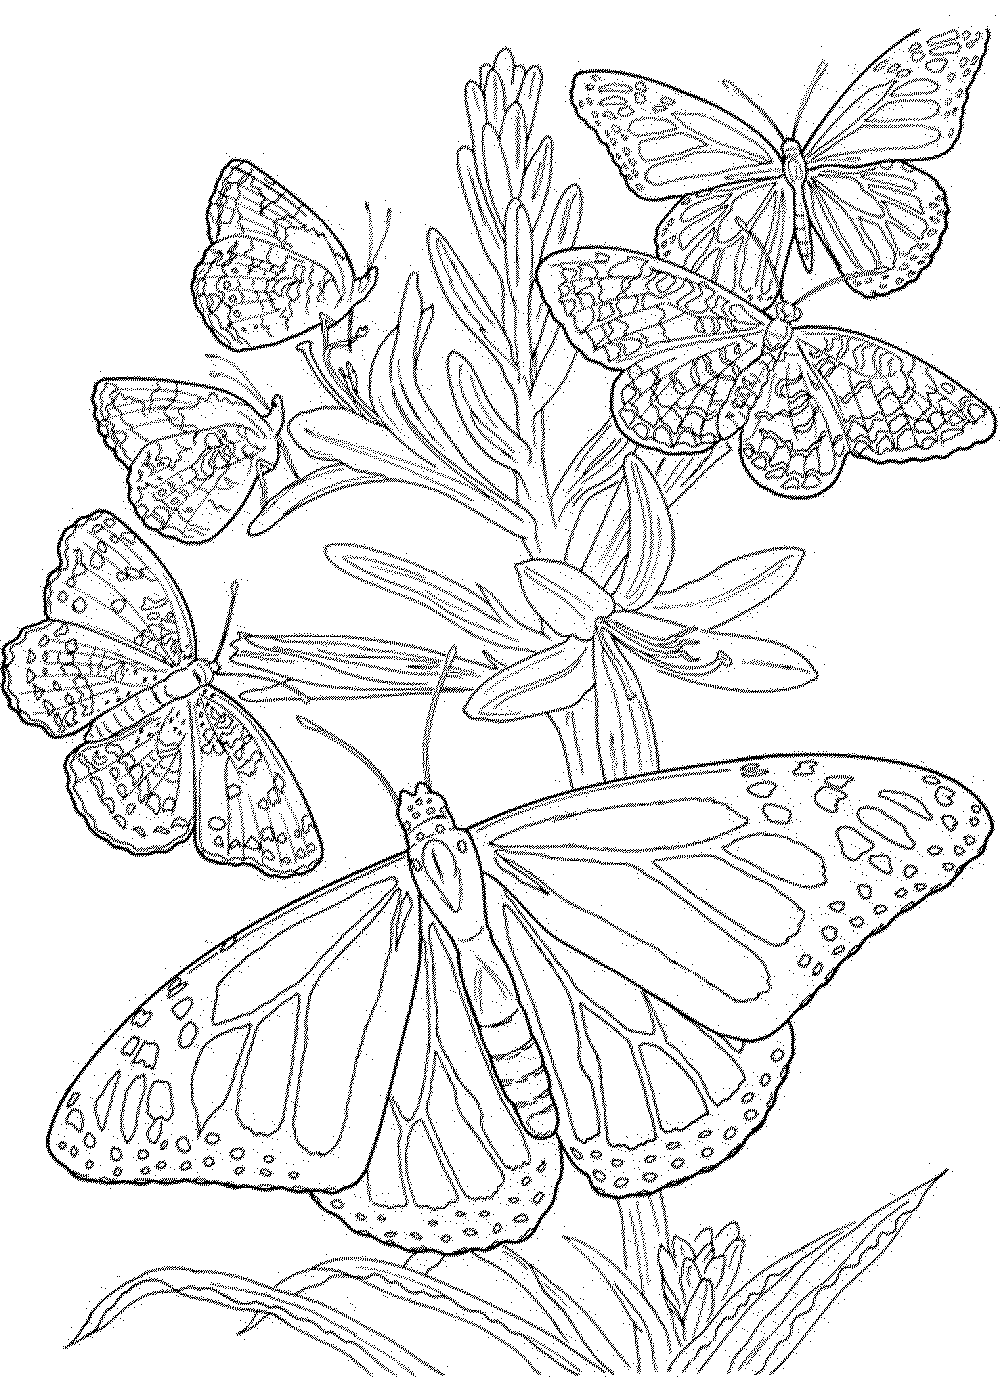 coloring pages for adults butterflies butterfly coloring page adults for coloring pages butterflies